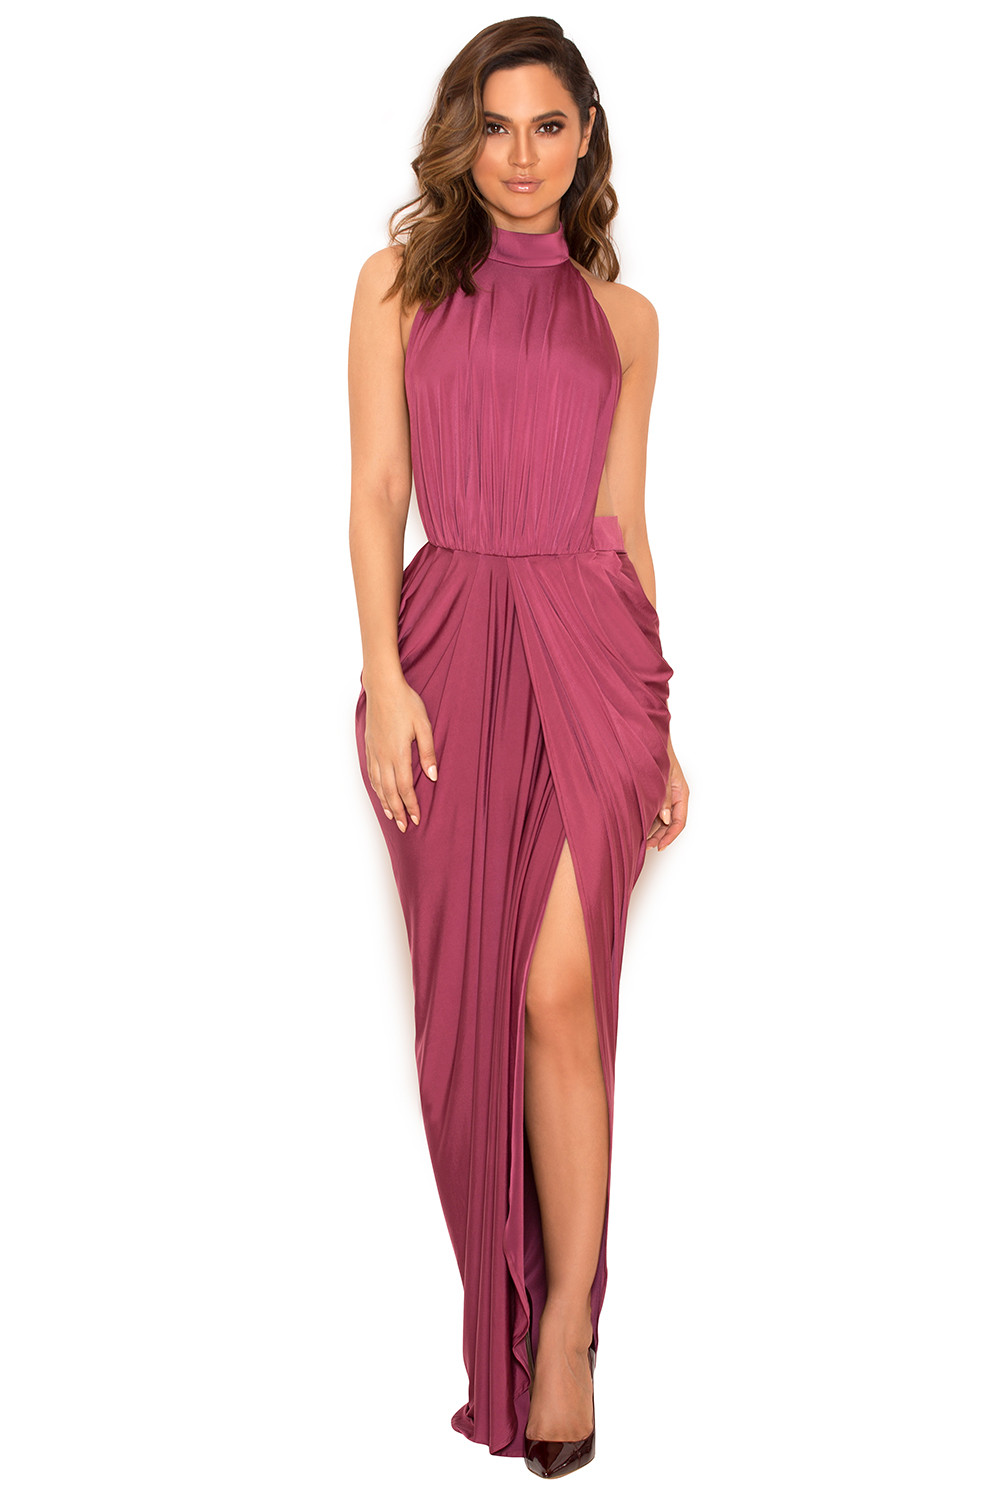 [drape jersey dress] - 28 images - clothing max dresses ...